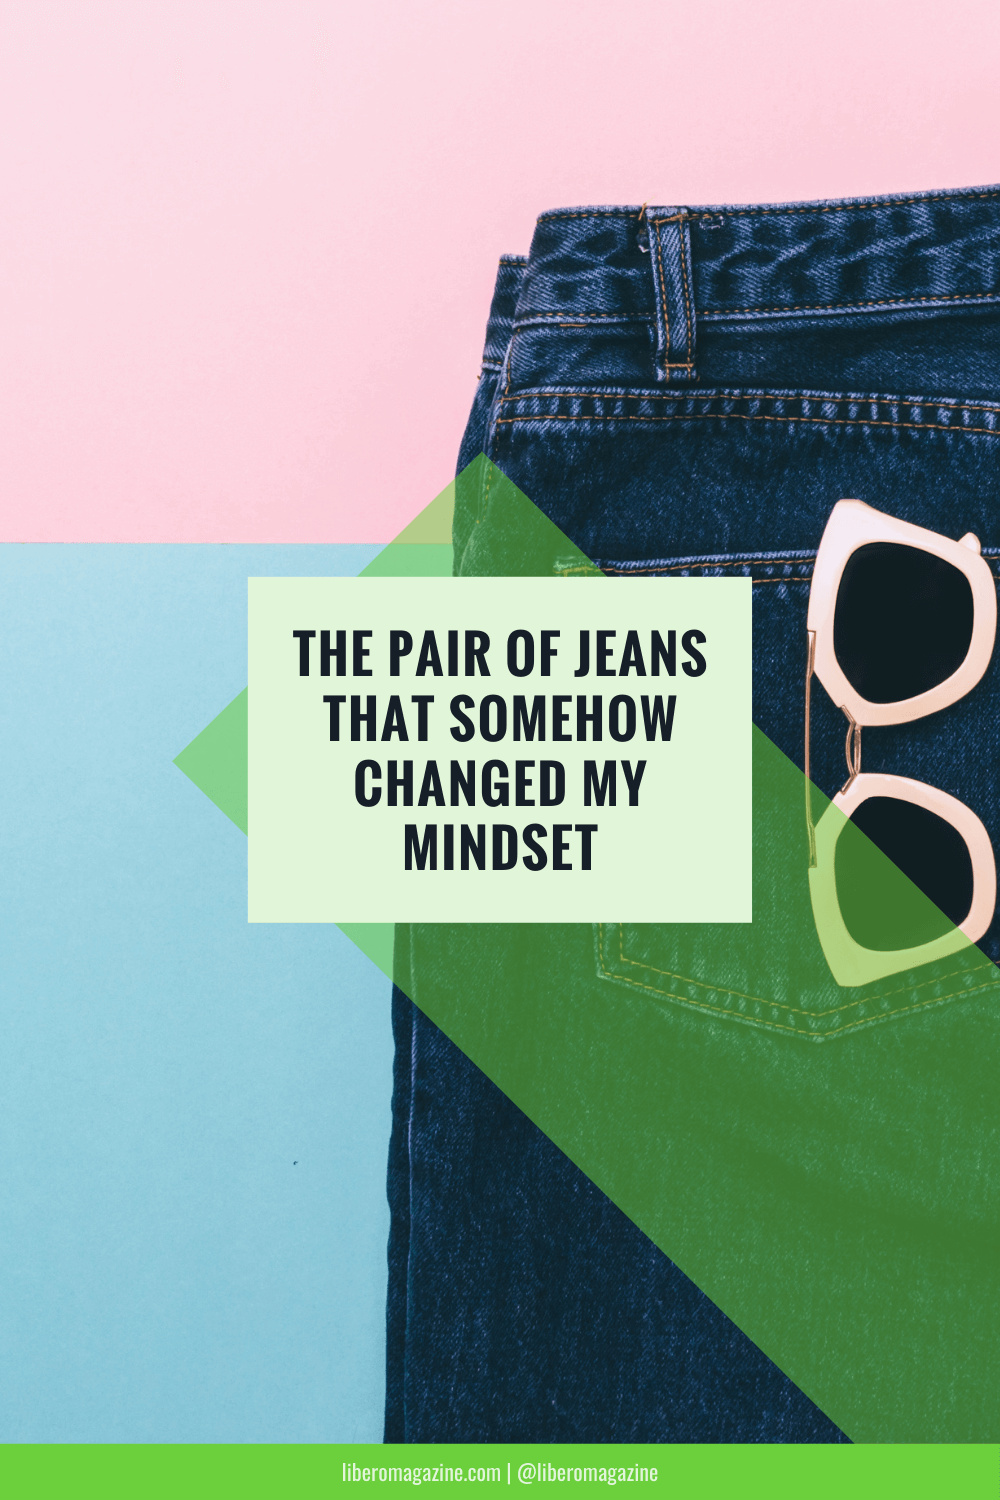 jeans that changed mindset